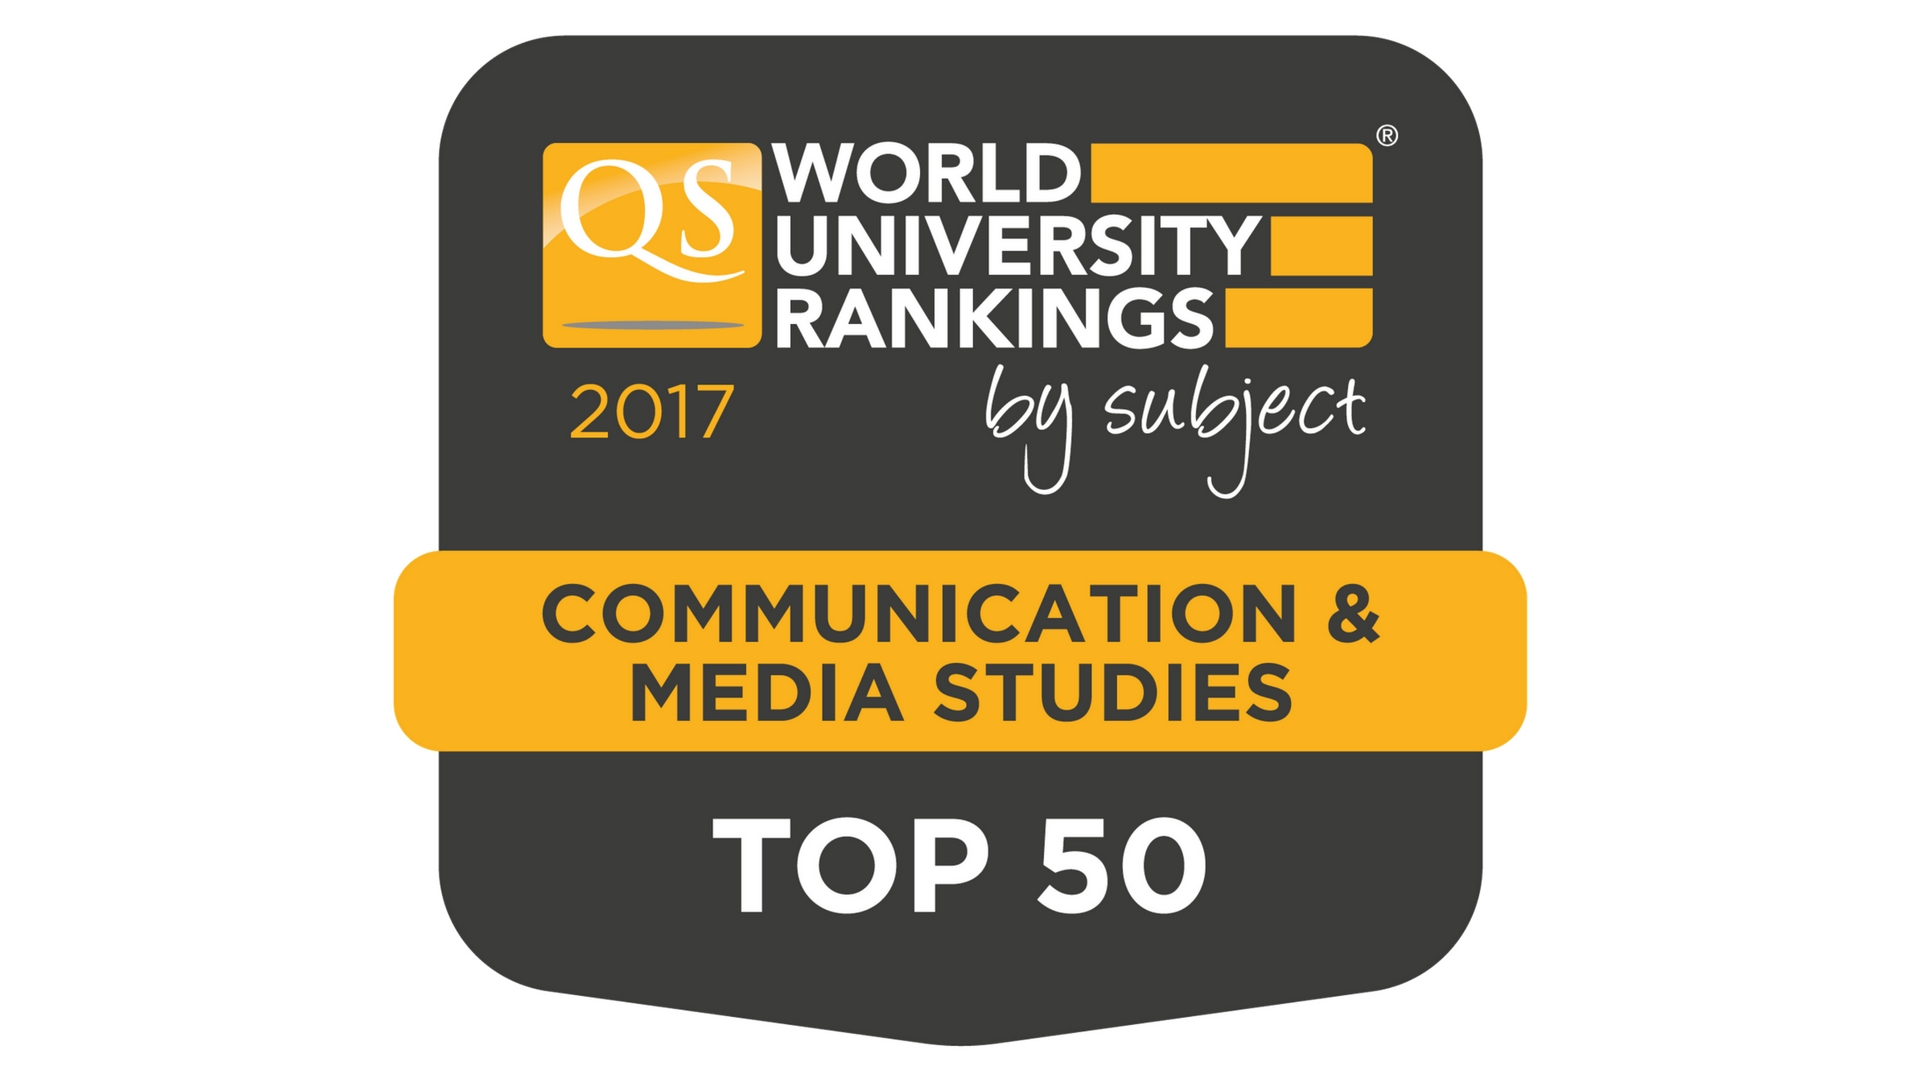 communication studies The department of communication studies prepares its students to be effective communicators get more info about one of the best colleges for communication studies.